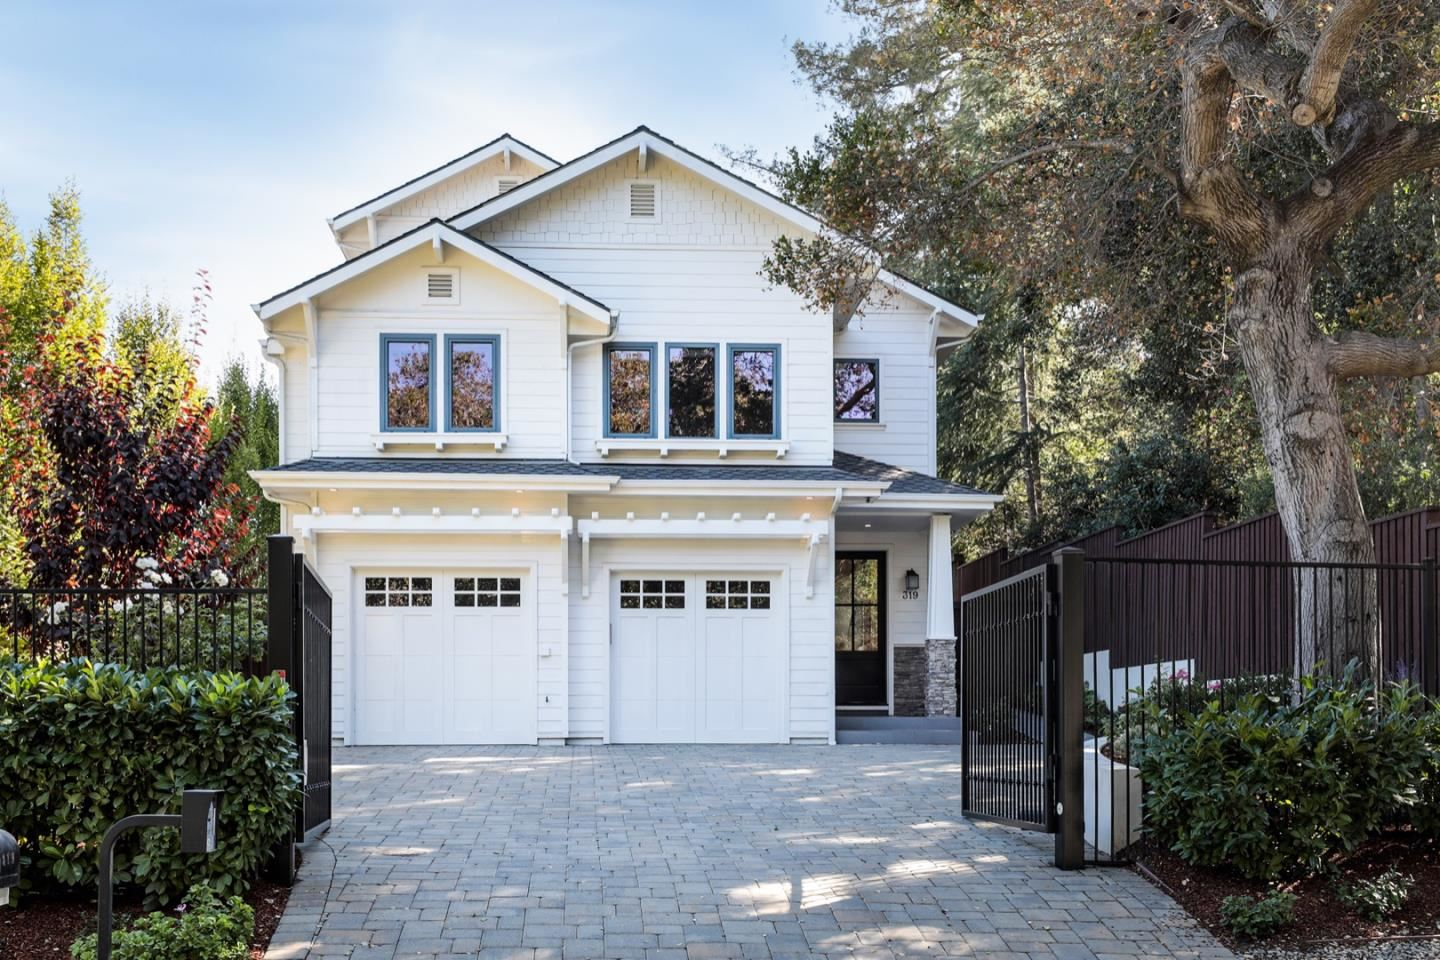 Photo for 319 Walsh RD, ATHERTON, CA 94027 (MLS # ML81816265)